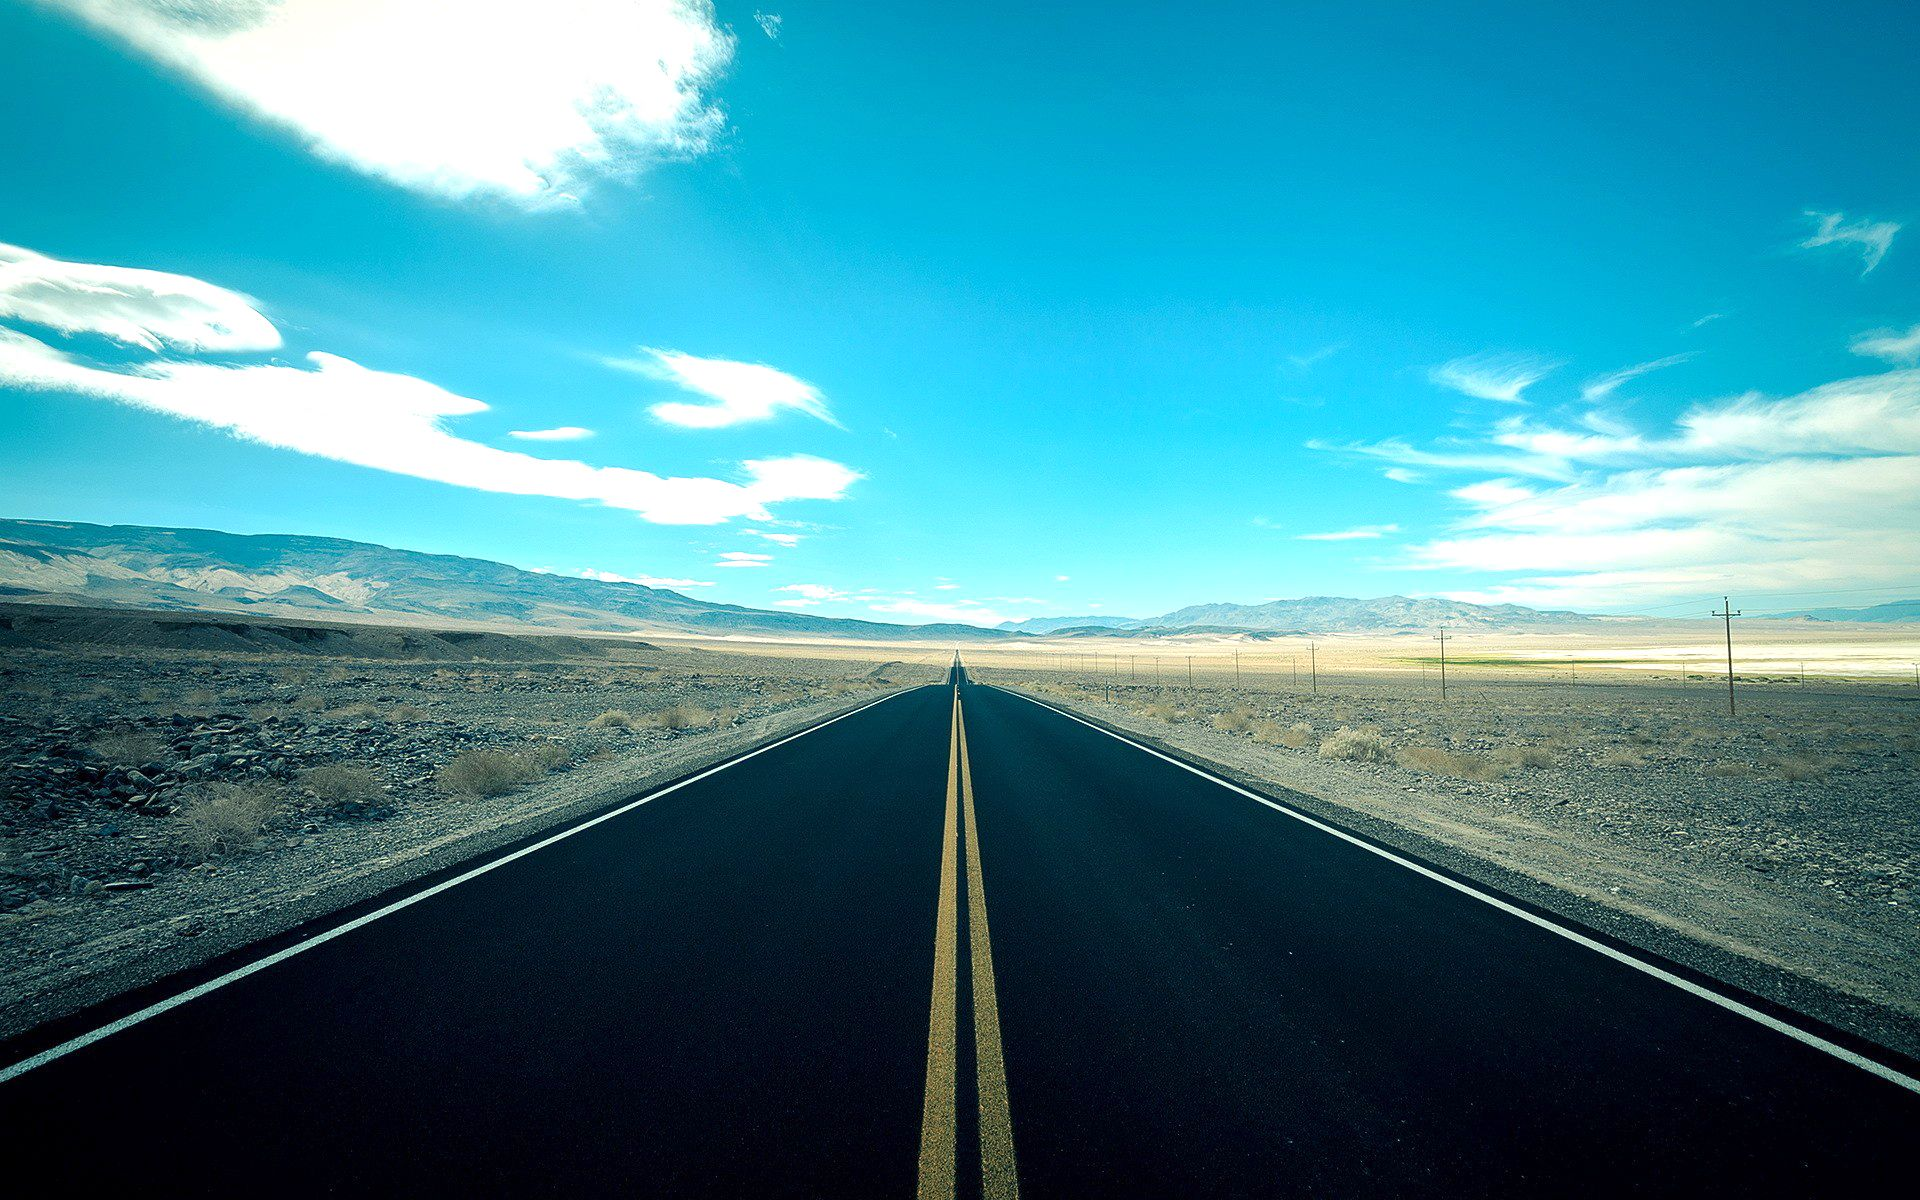 Road In The Middle Of Nowhere Sky Landscape Photo Hd Wallpaper